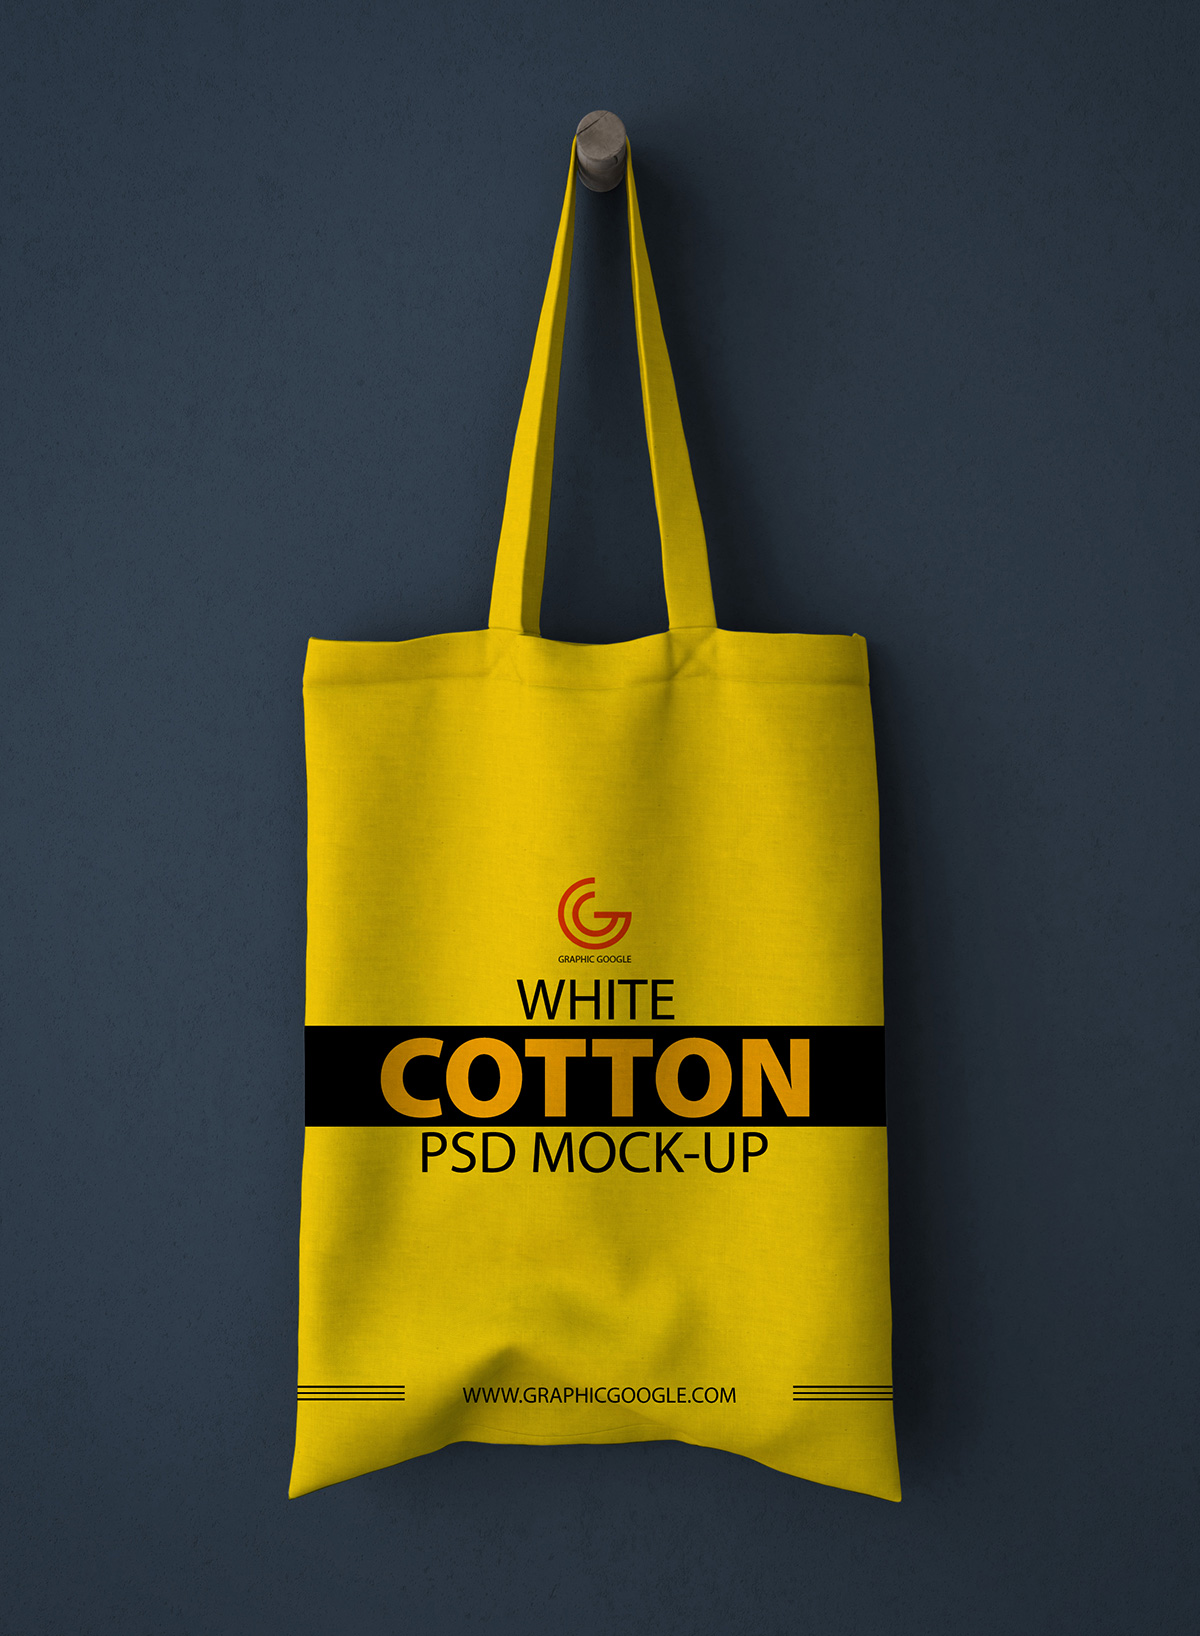 white-cotton-bag-psd-mock-up